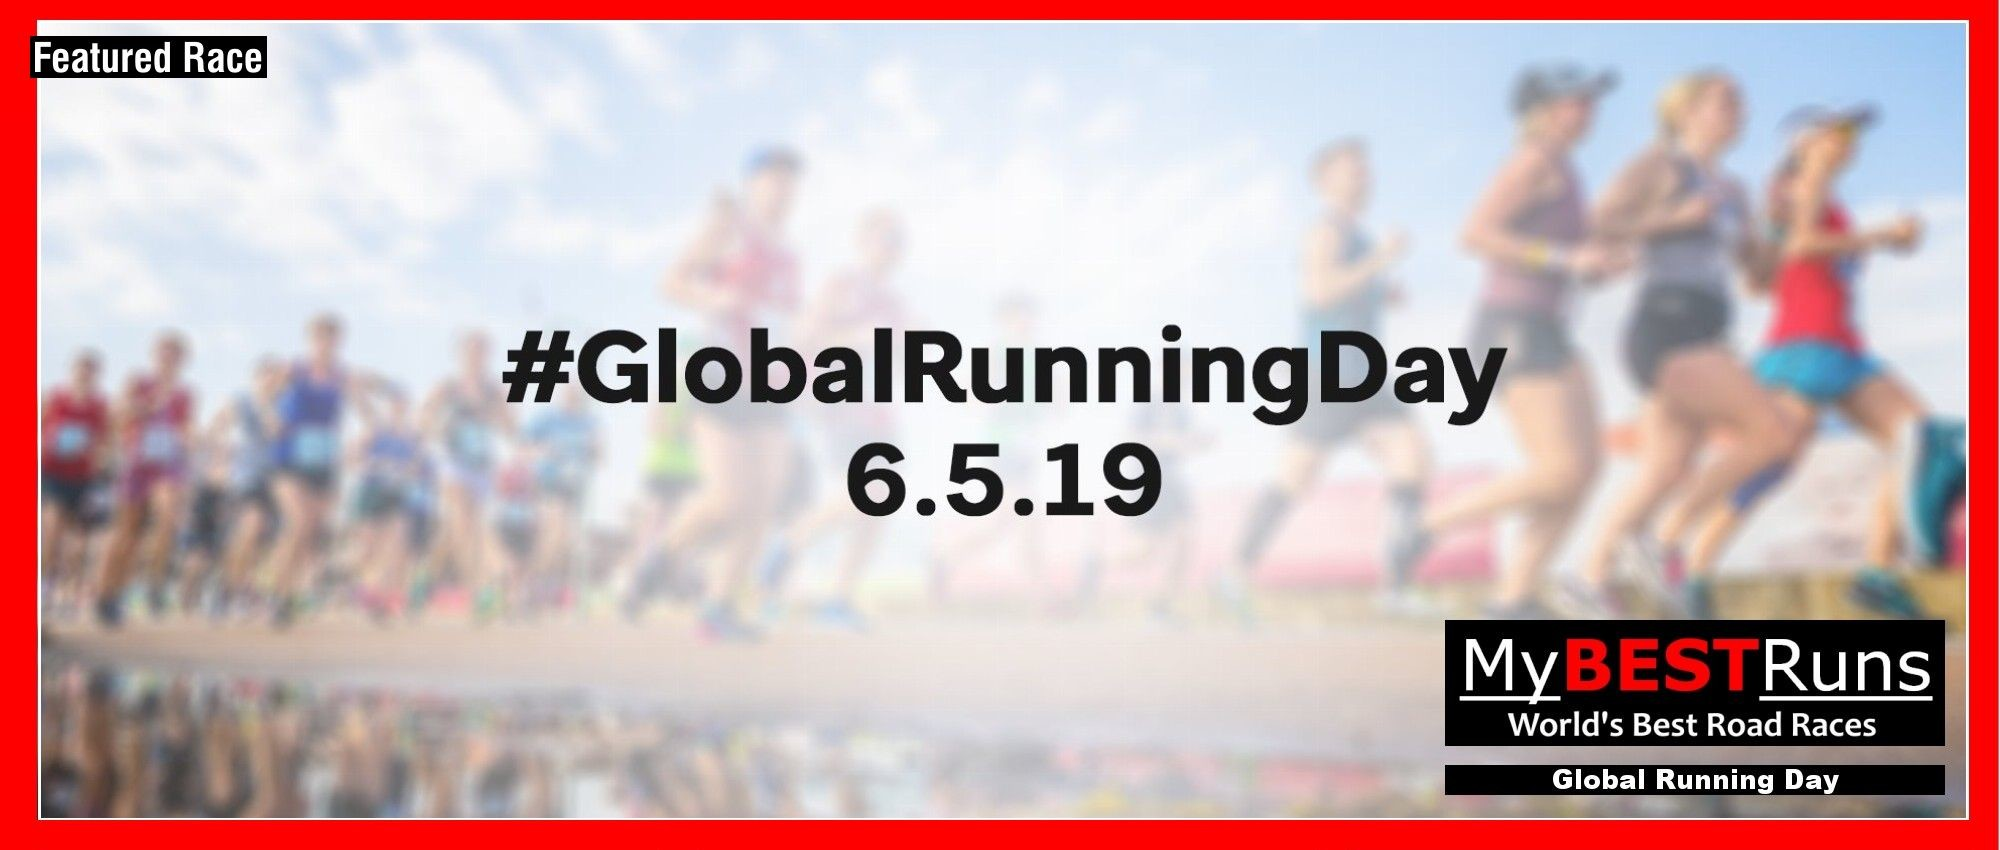 Happy Global Running Day!  Be sure to run, walk or jog at least one mile today!